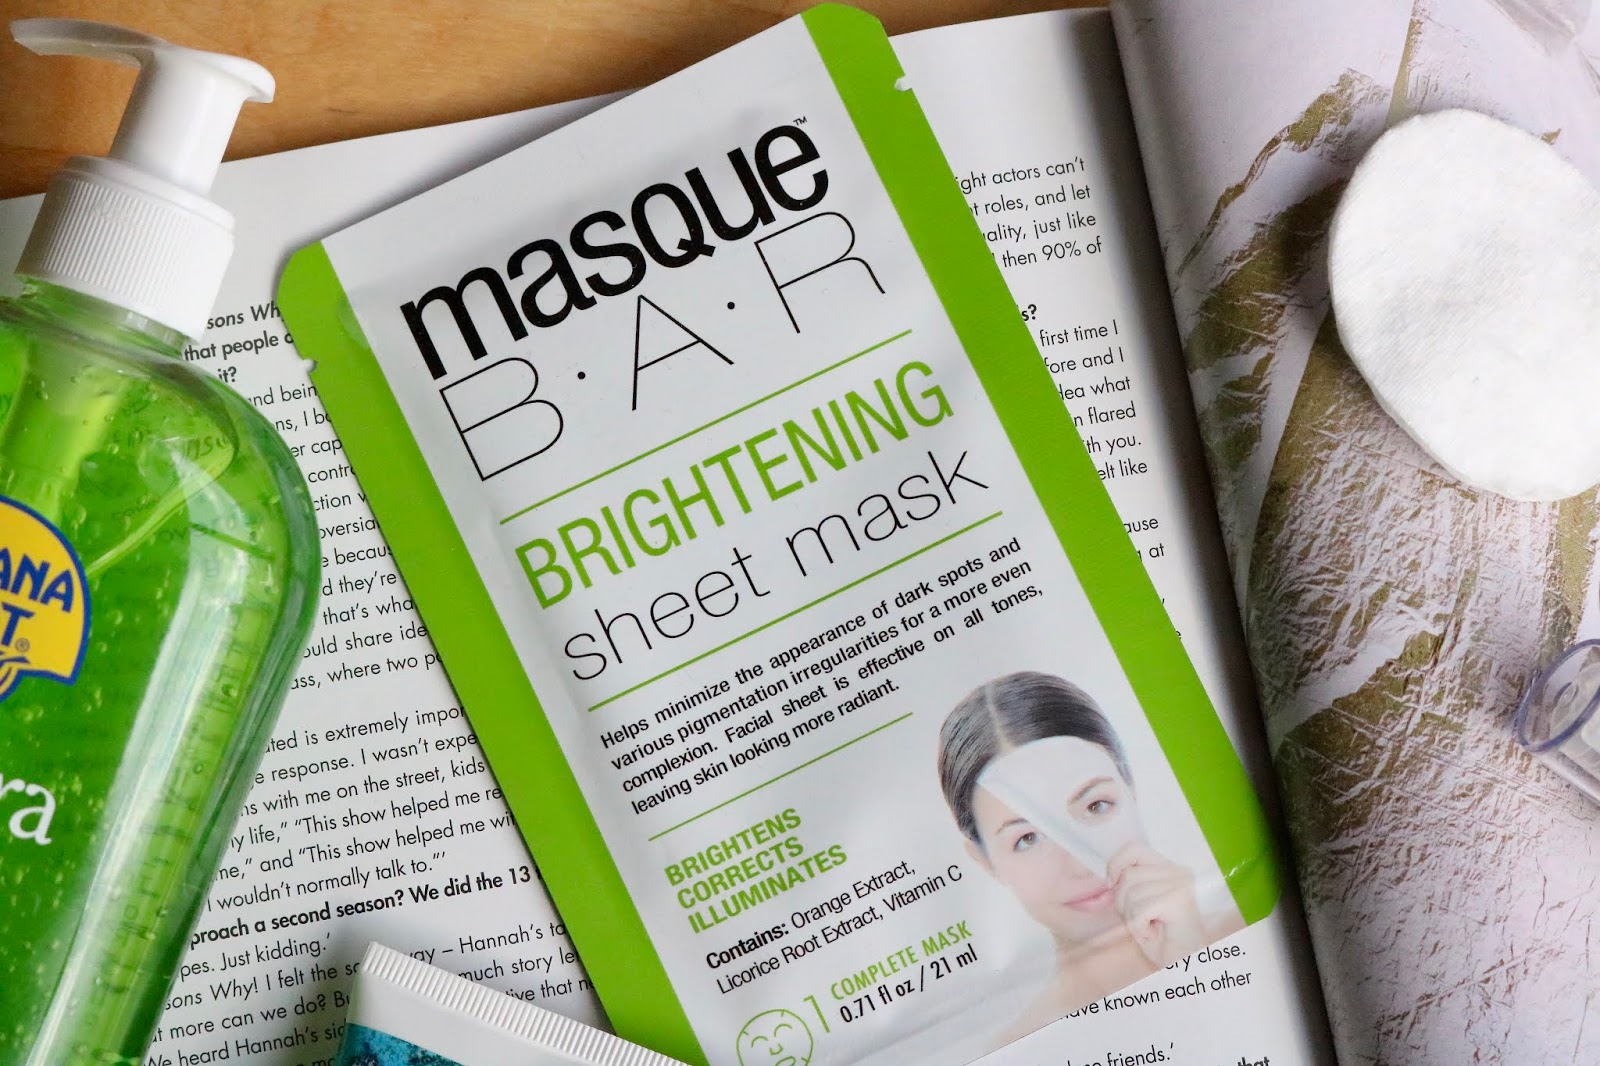 Masque Bar brightening sheet masks